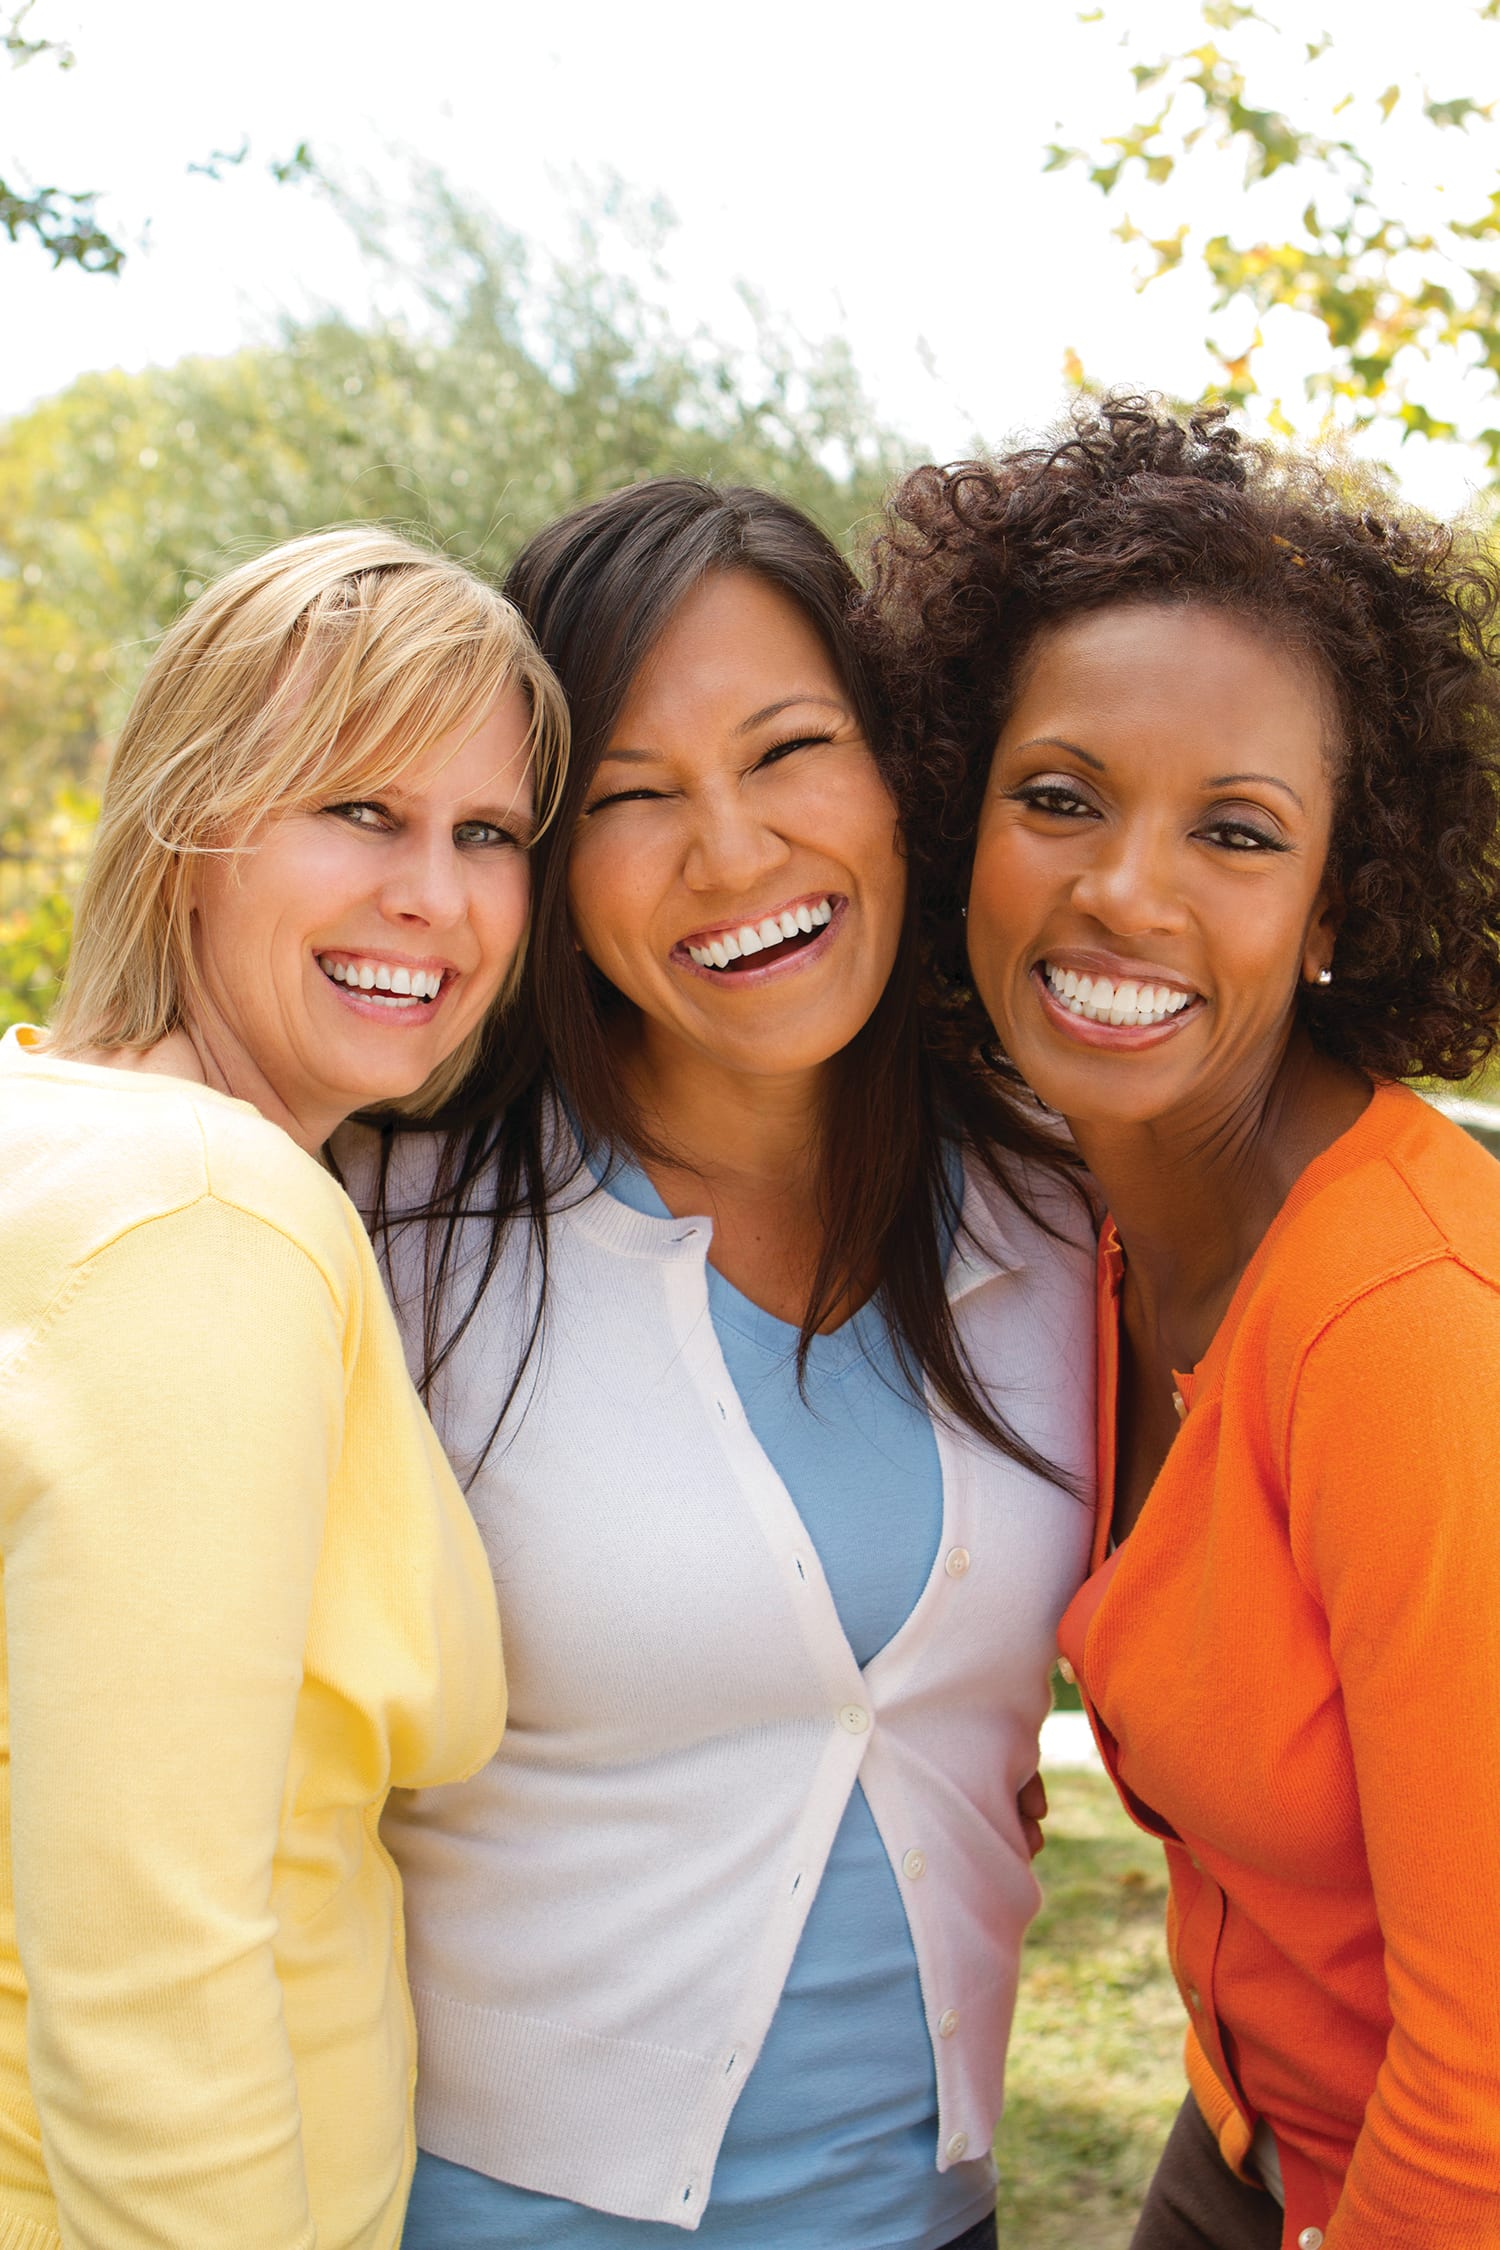 Three women of different ethnic backgrounds